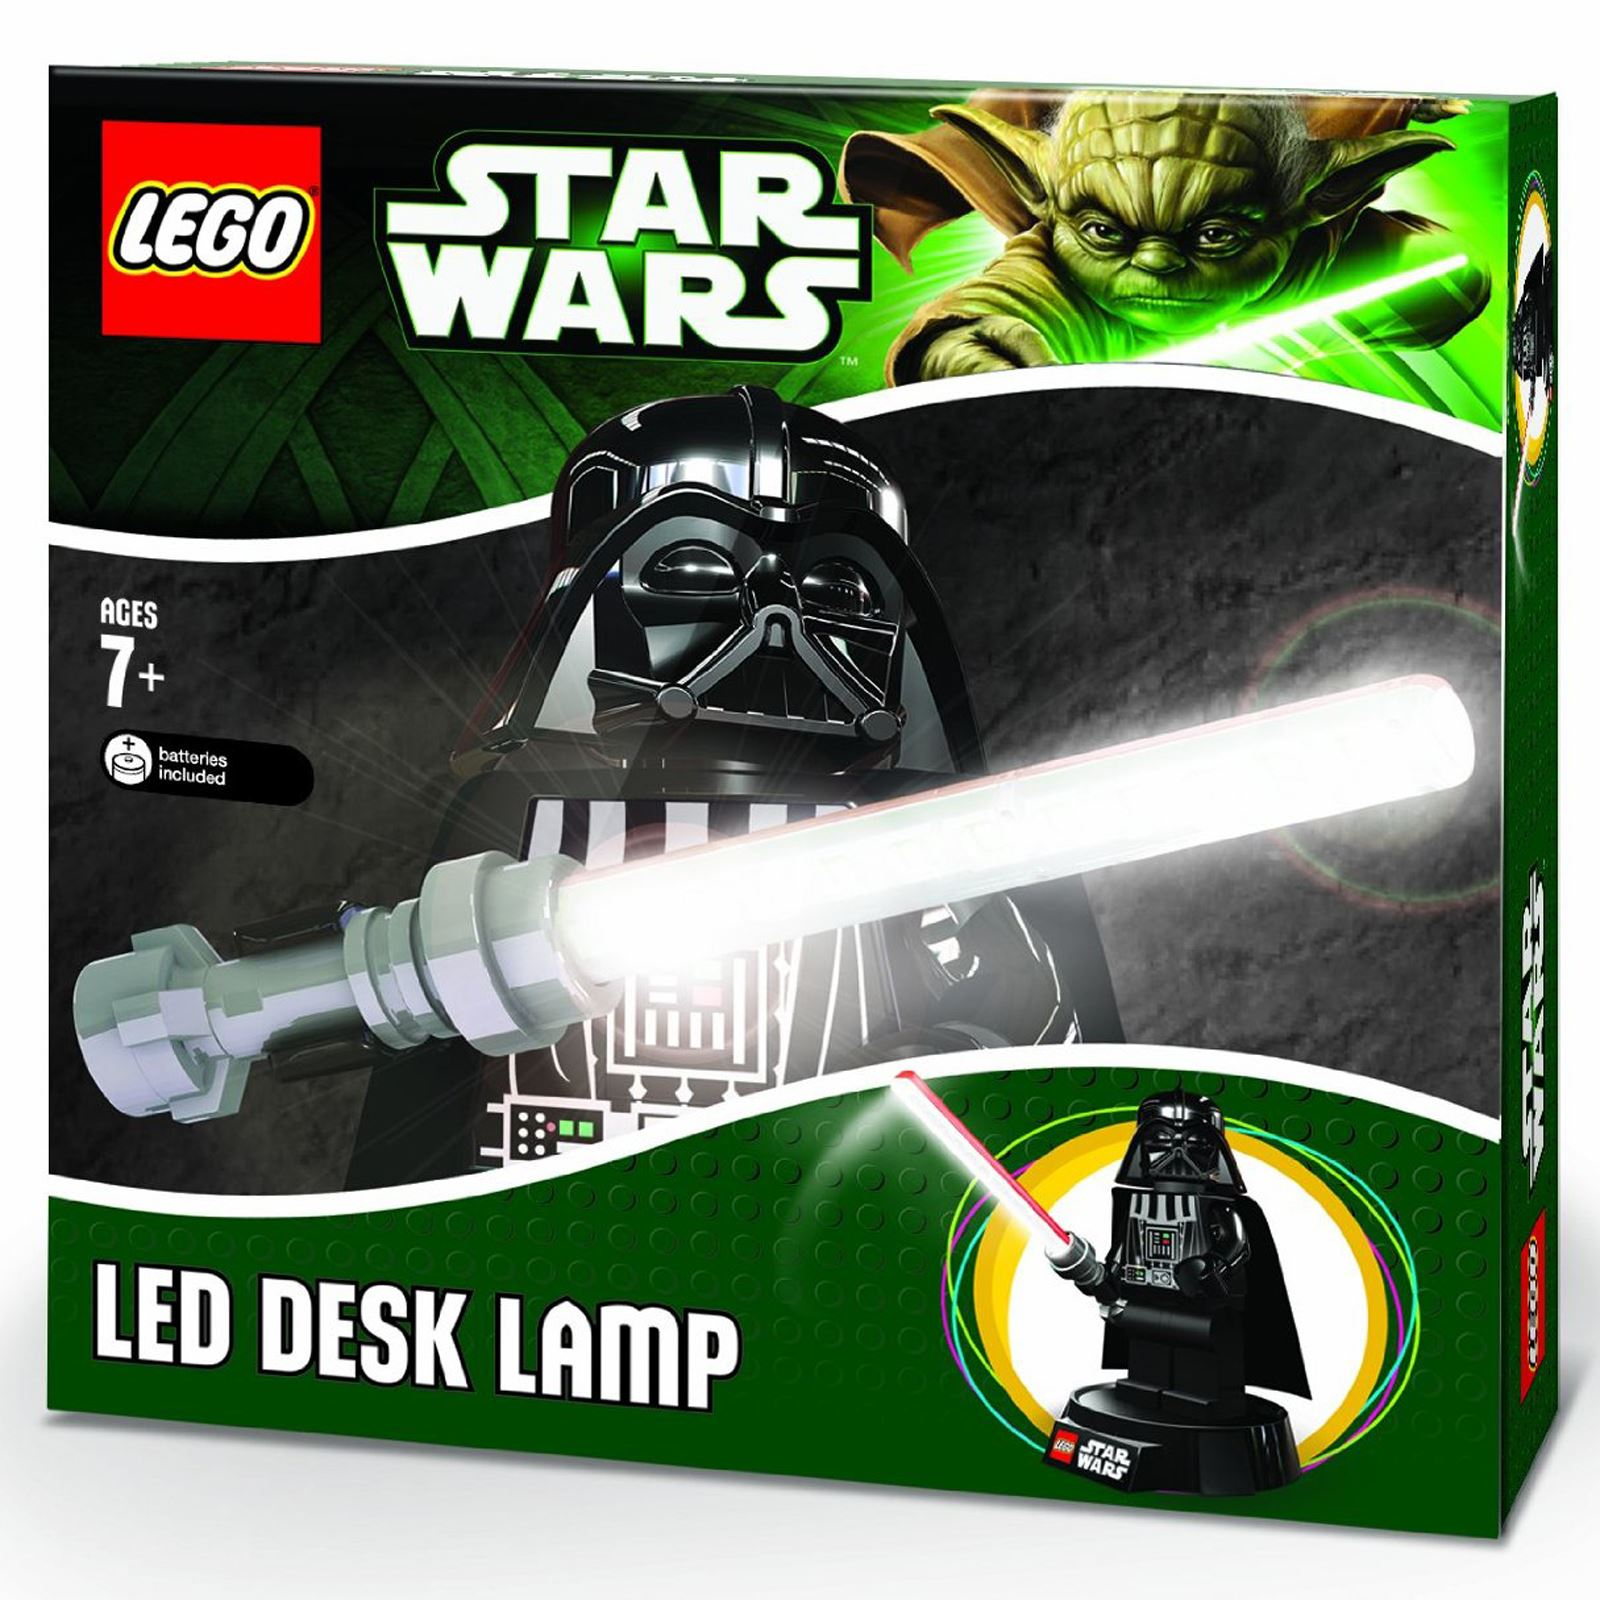 Star wars lego nuit lumière//lampe//torche-boba darth /& trooper yoda new-officiel!